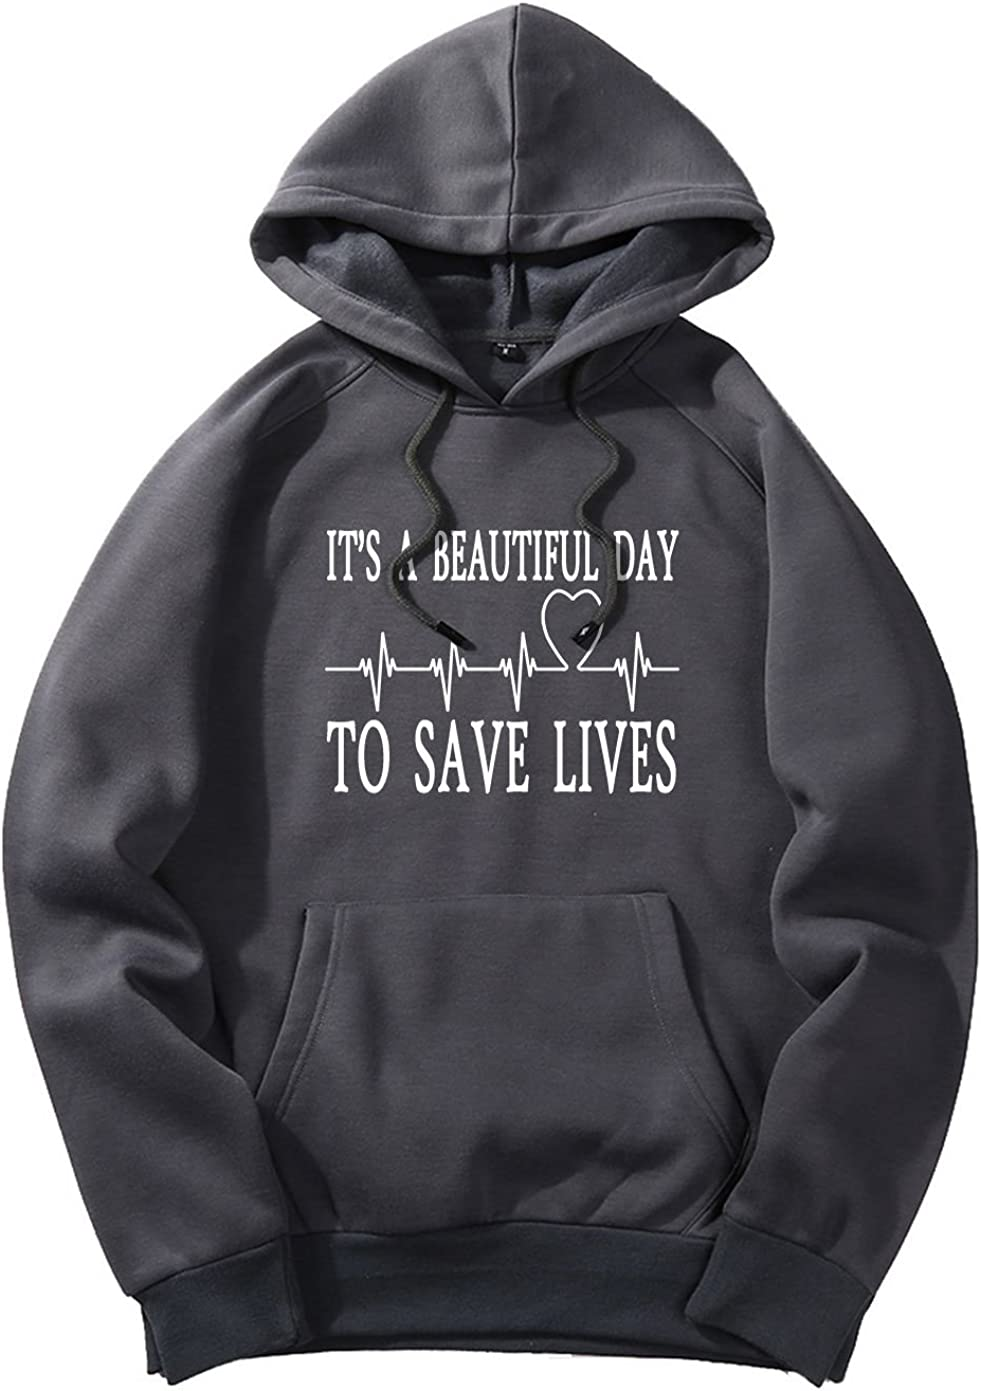 xueshankeji Its A Beautiful Day To Save Lives Fashion Hoodie Sweater For Mens Dark Gray XXL